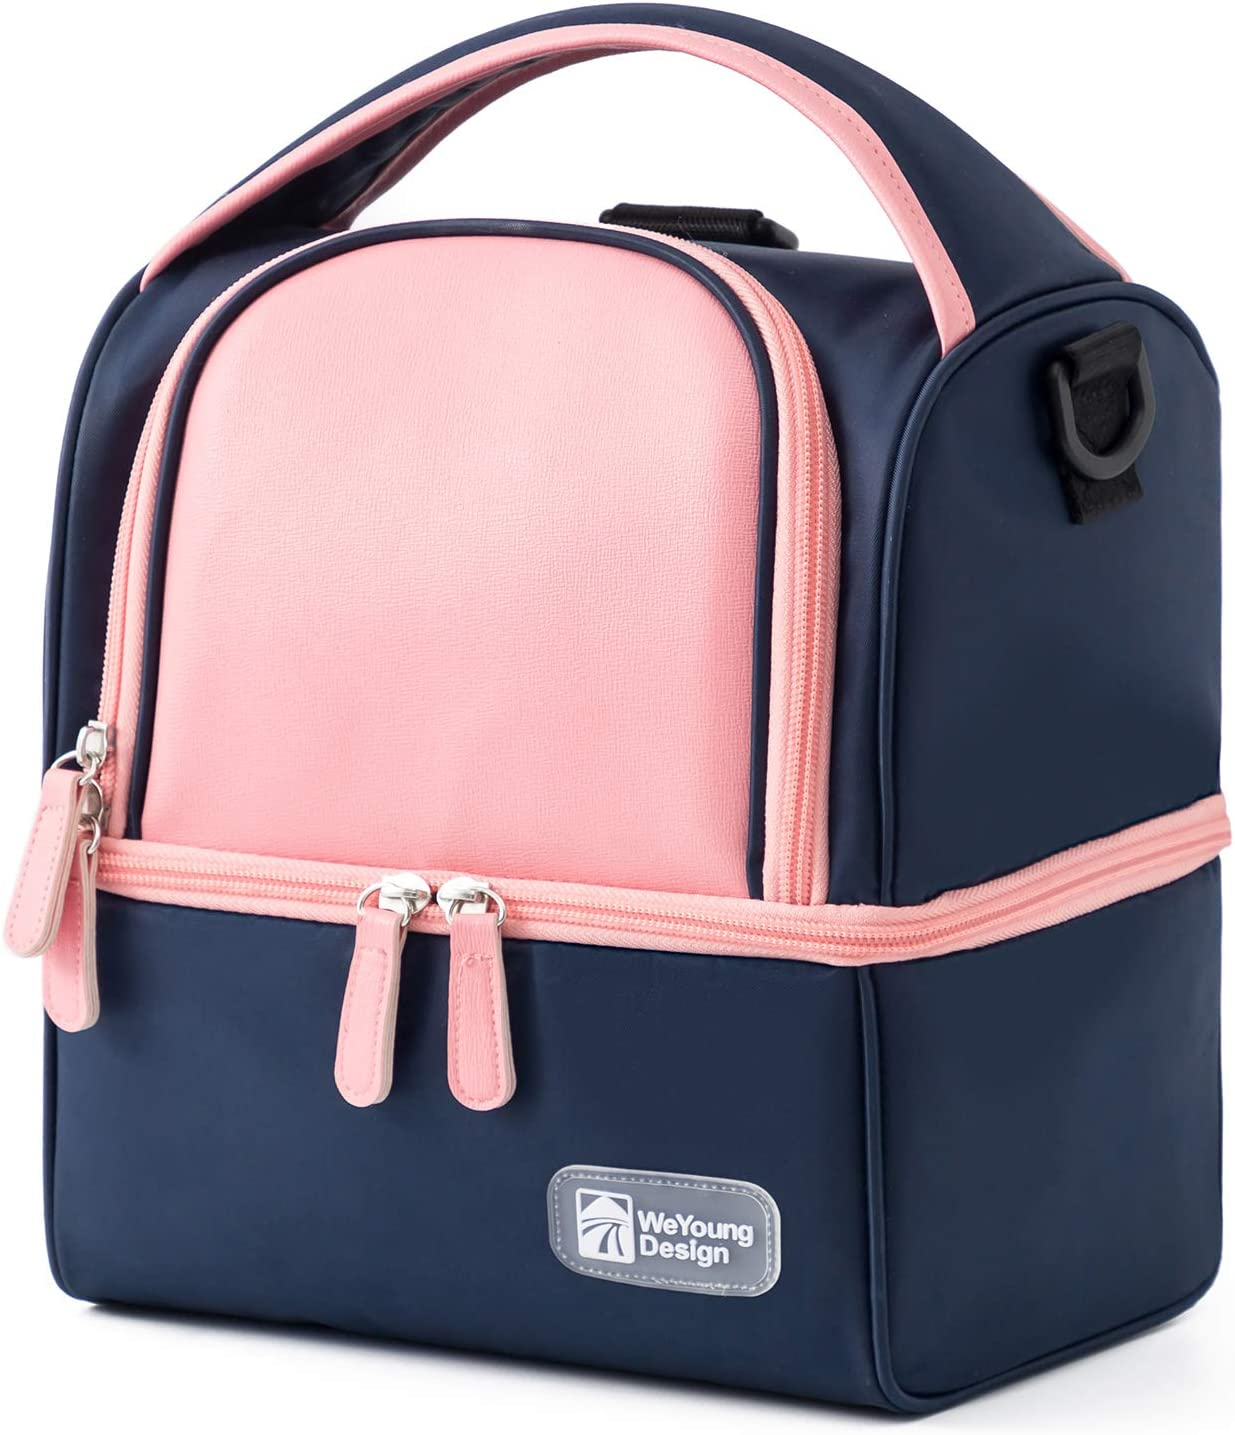 YSCP Insulated Dual Compartment Lunch Bag for Women/Men Durable Double Deck Reusable Shoulder Bento Box Container for Work/Picnic/Kids Back to School Gift Navy Blue Pink Leakproof Backpack Lunch Bags